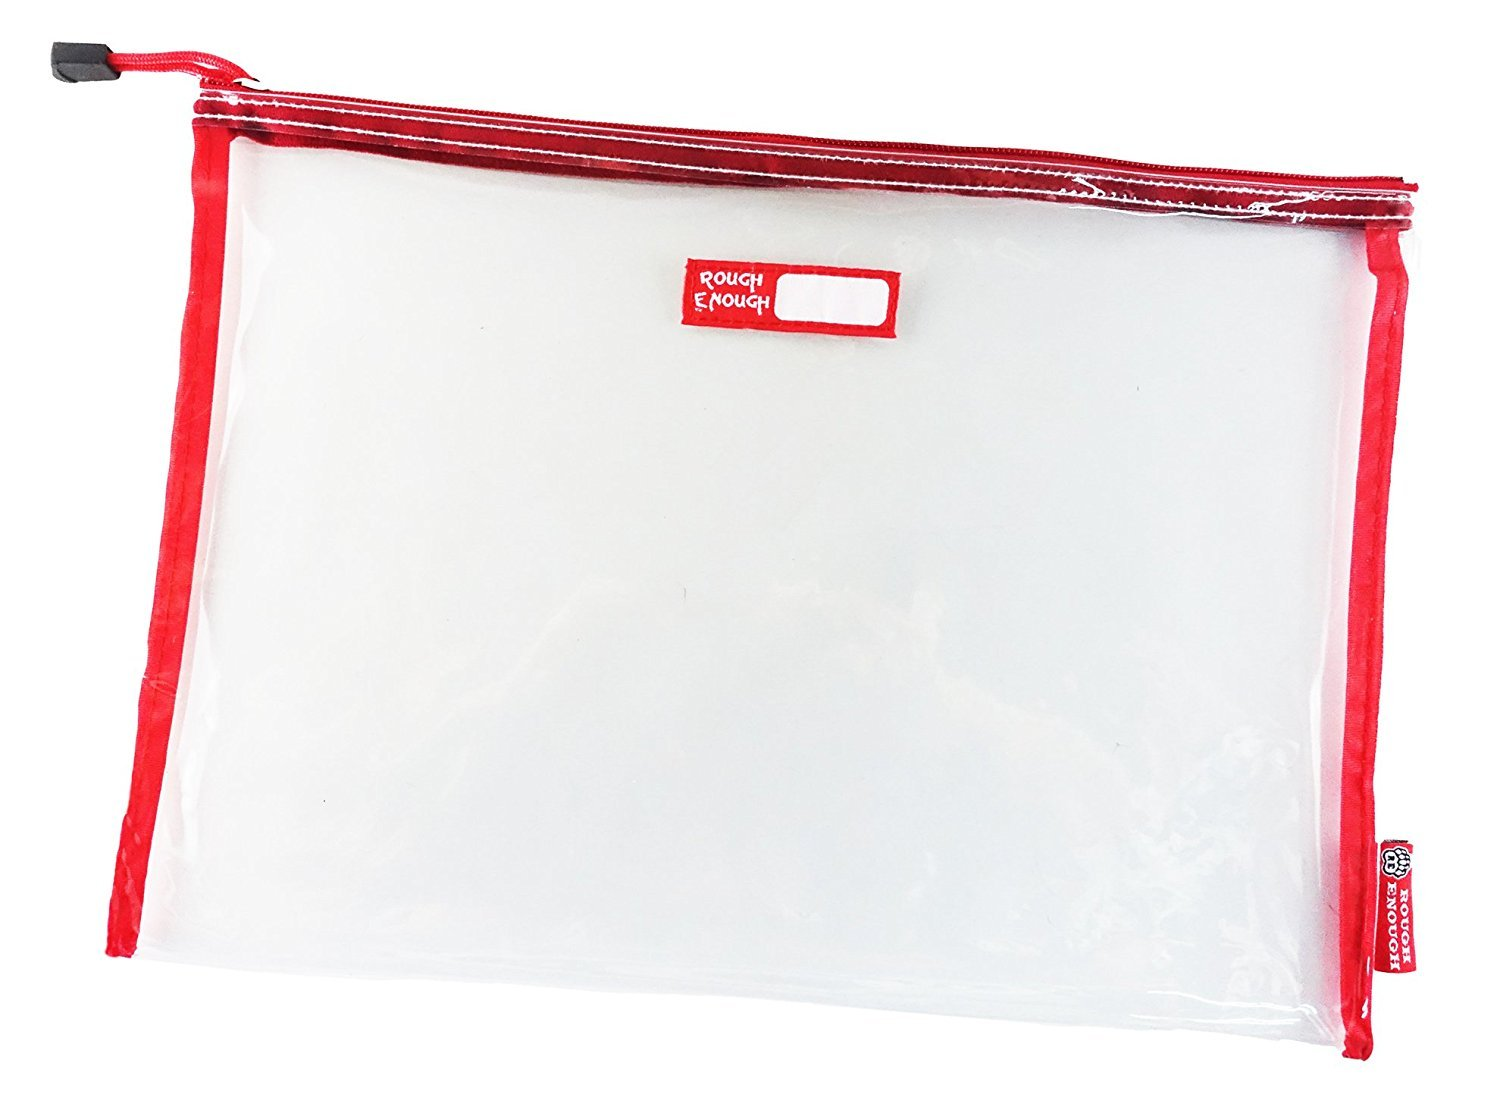 Rough Enough Durable Transparent Clear Classic Multi-Functional Big Document Pouch with Zipper A4 Size Important Storage File Holders Large Folder for Filing Organizer TSA School Business Travel by RE ROUGH ENOUGH (Image #1)